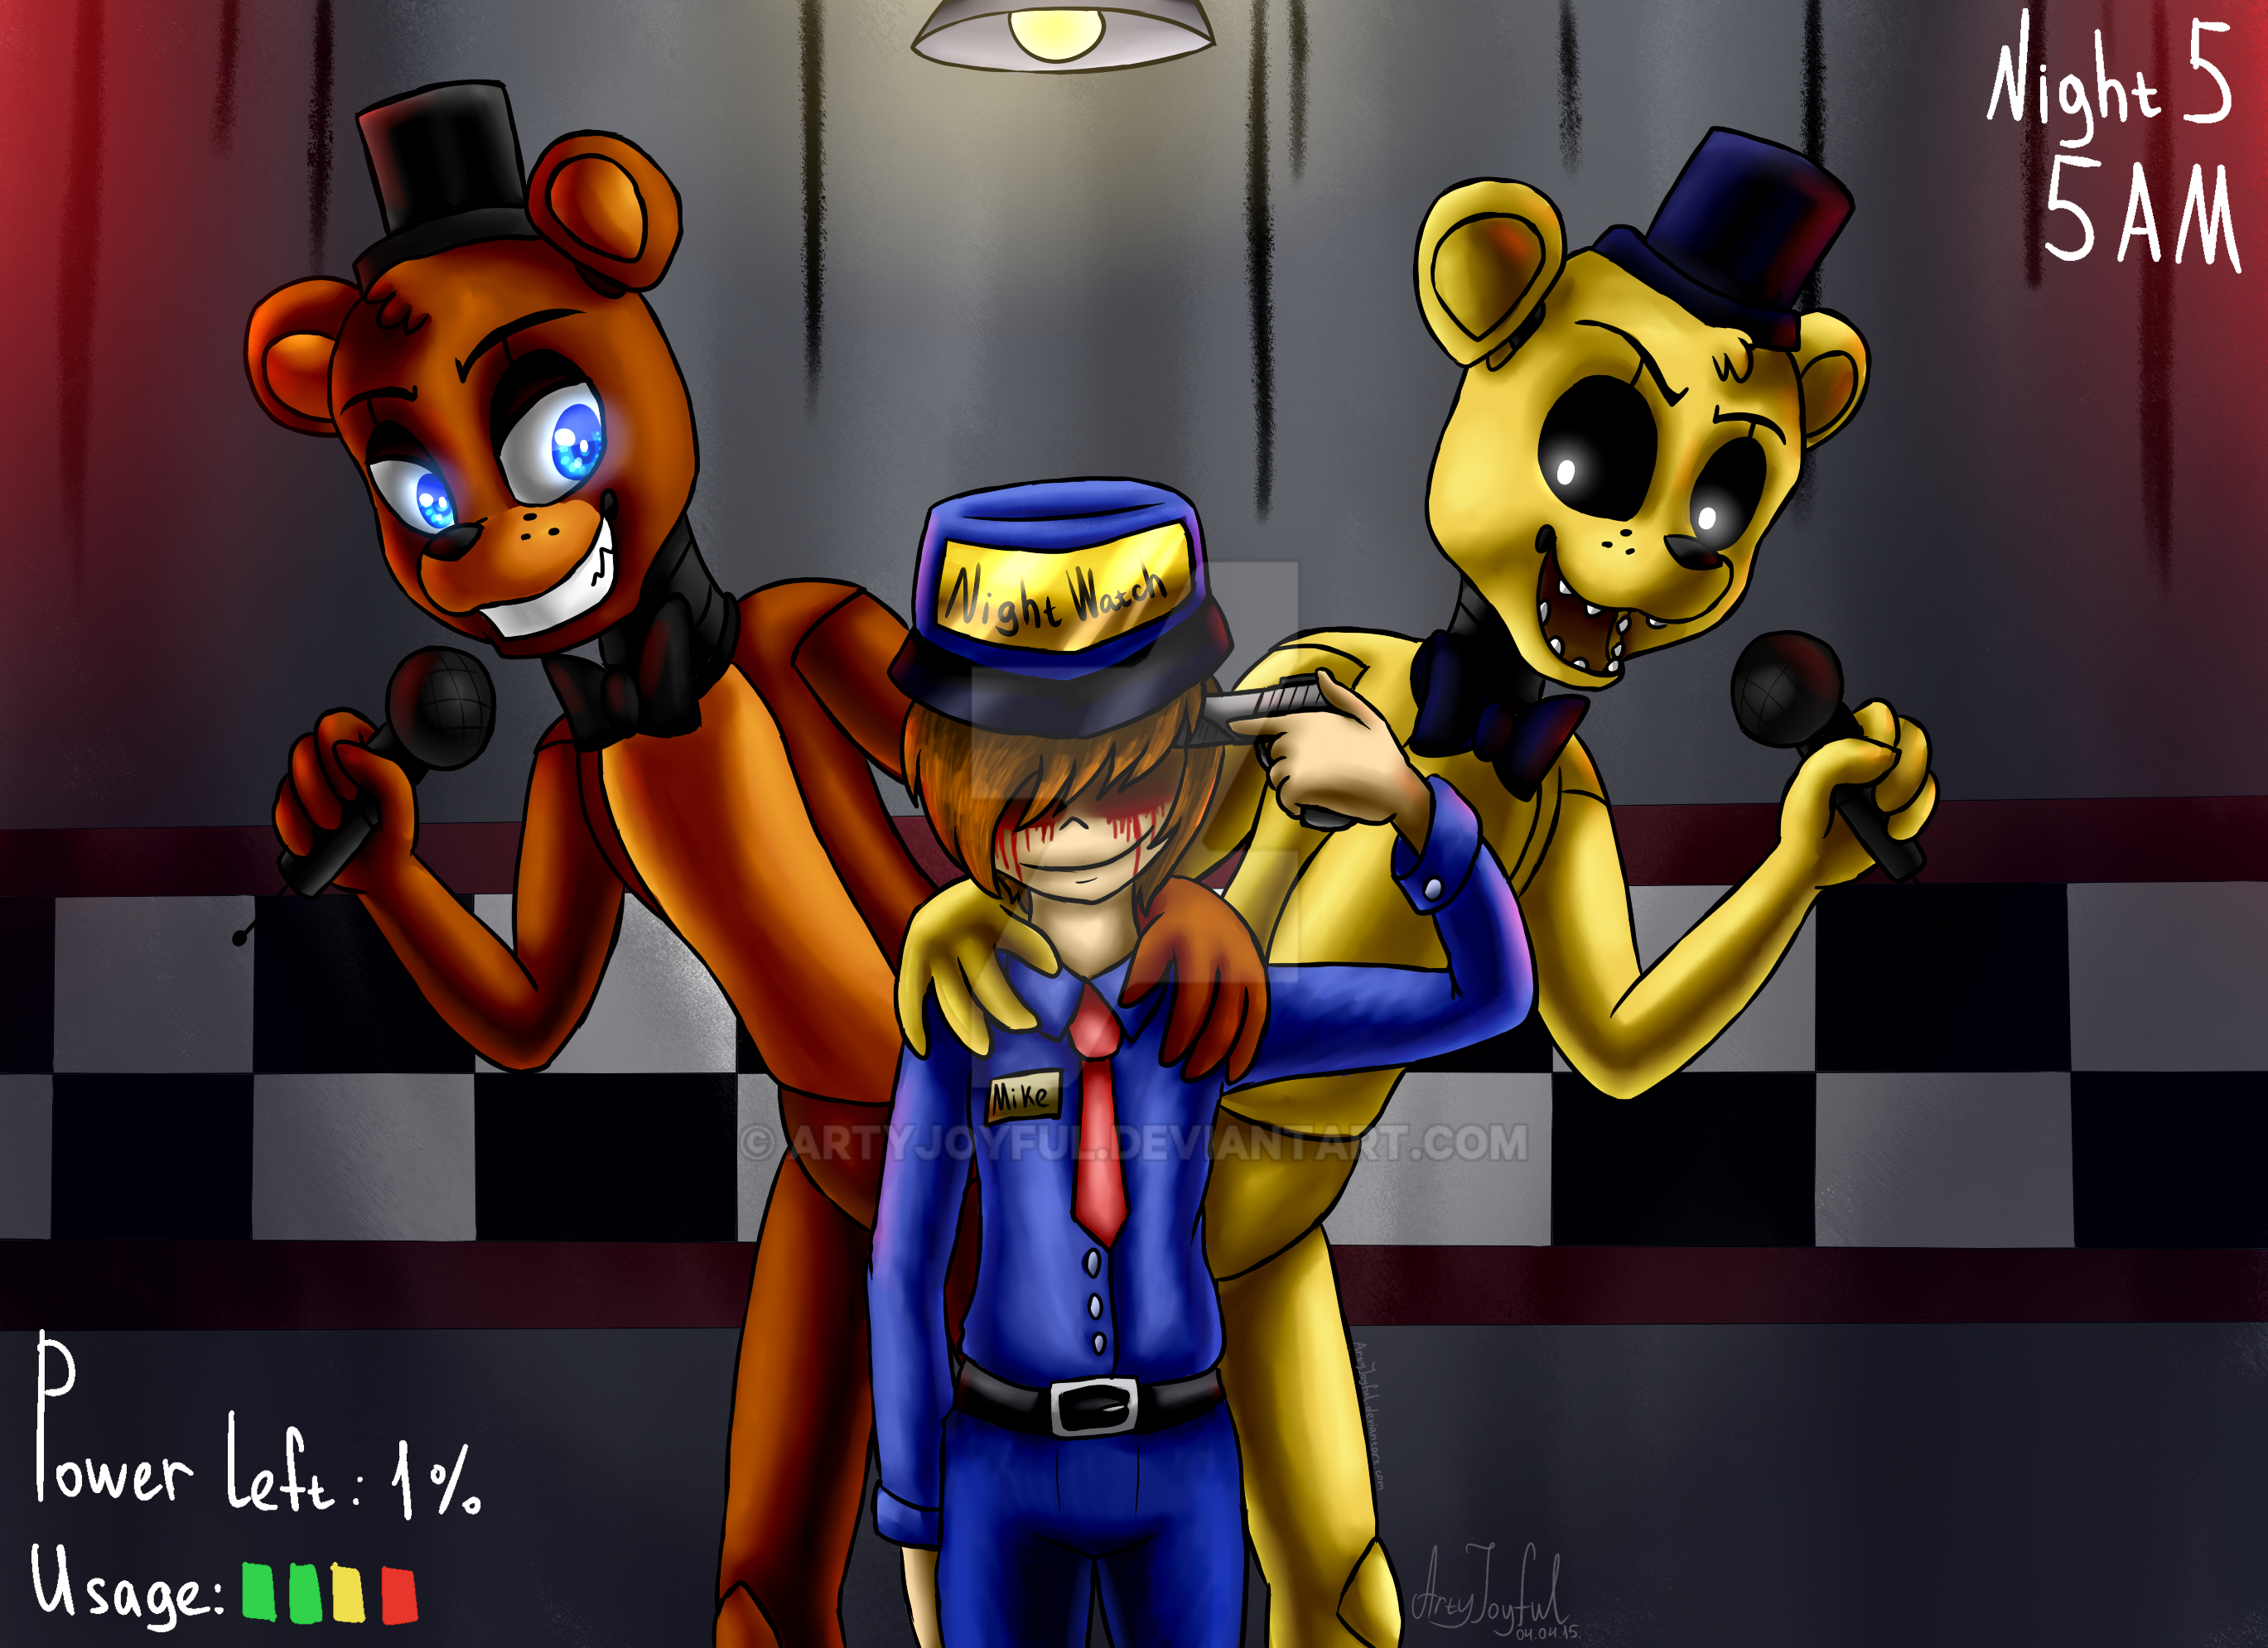 Game Over (Five Nights at Freddy's) by ArtyJoyful on DeviantArt